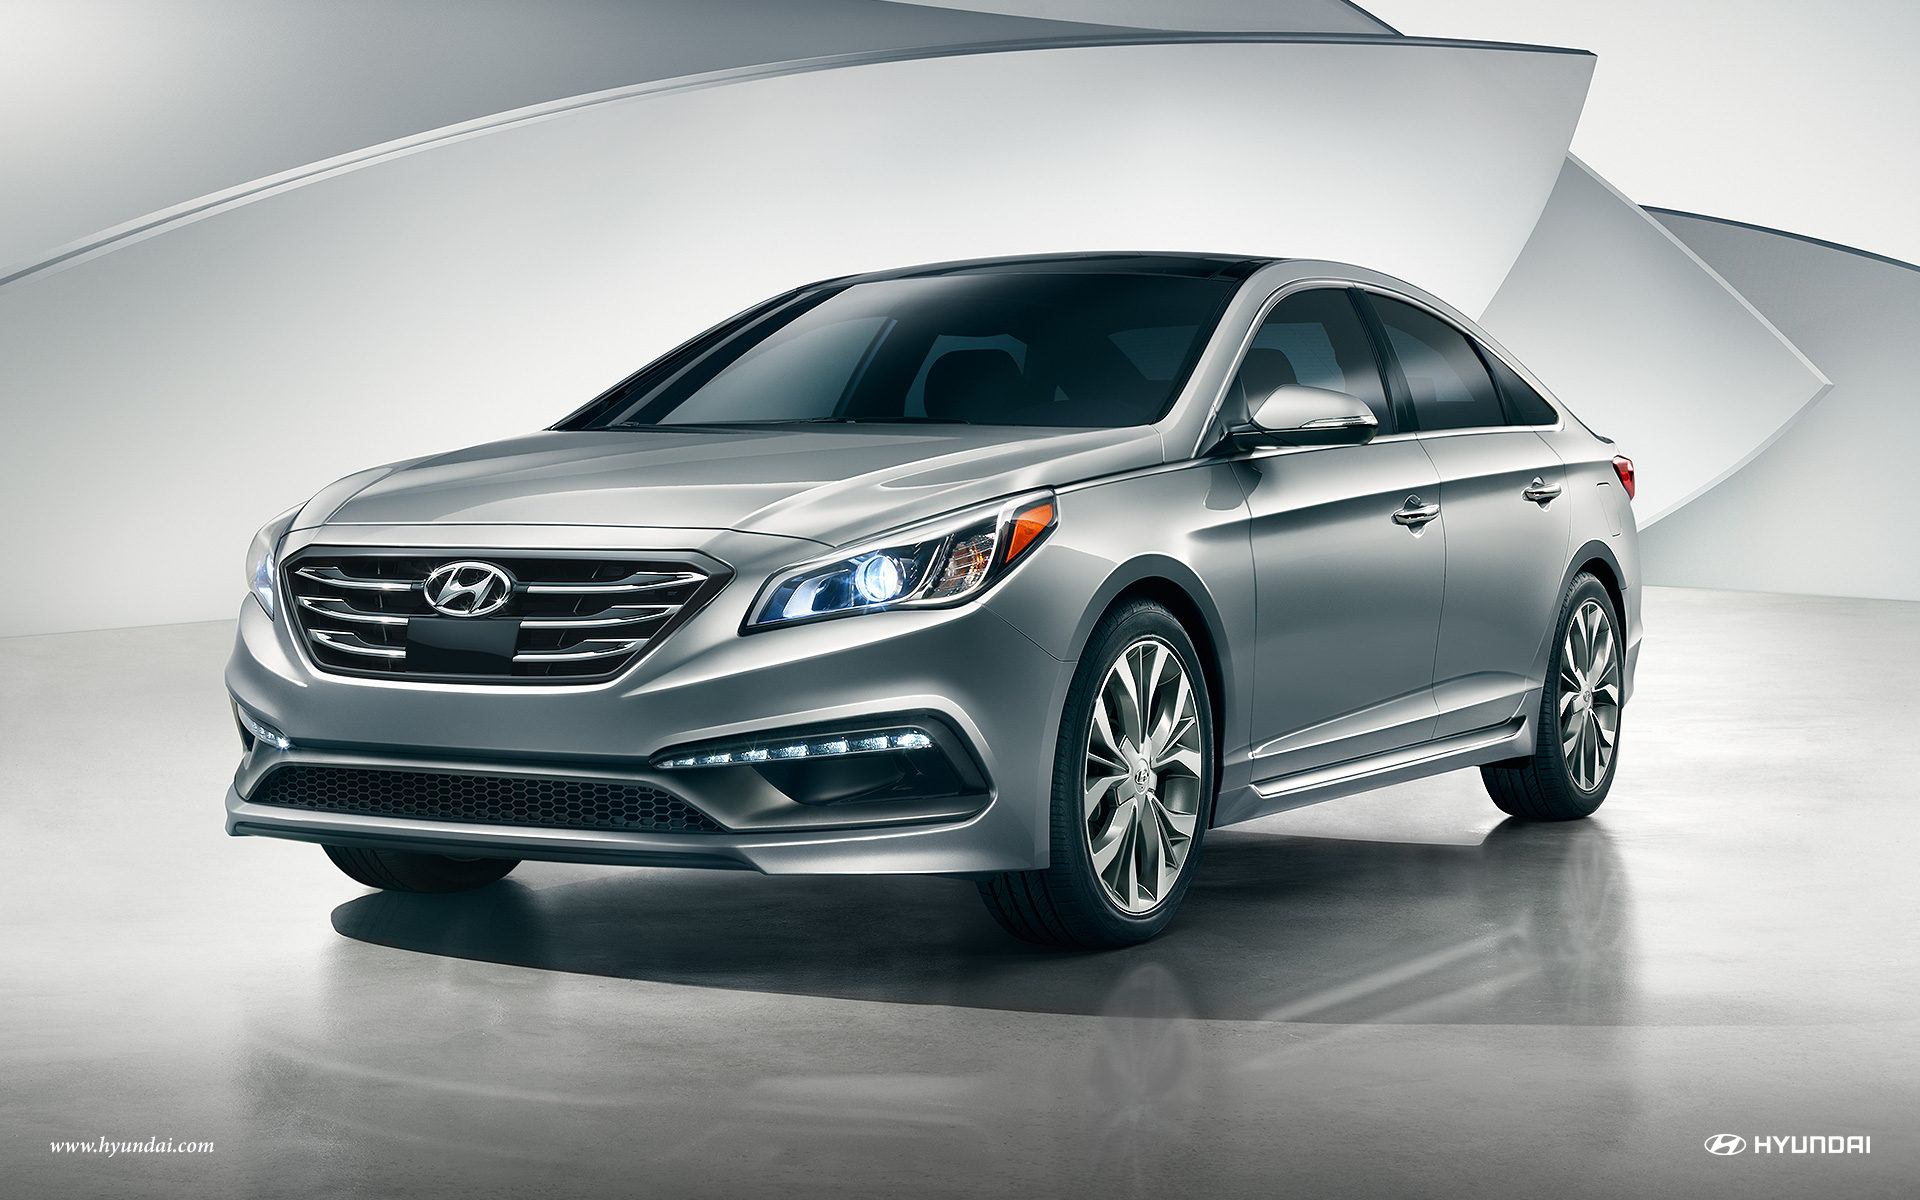 Exterior View Of 2017 Hyundai Sonata in Tracy